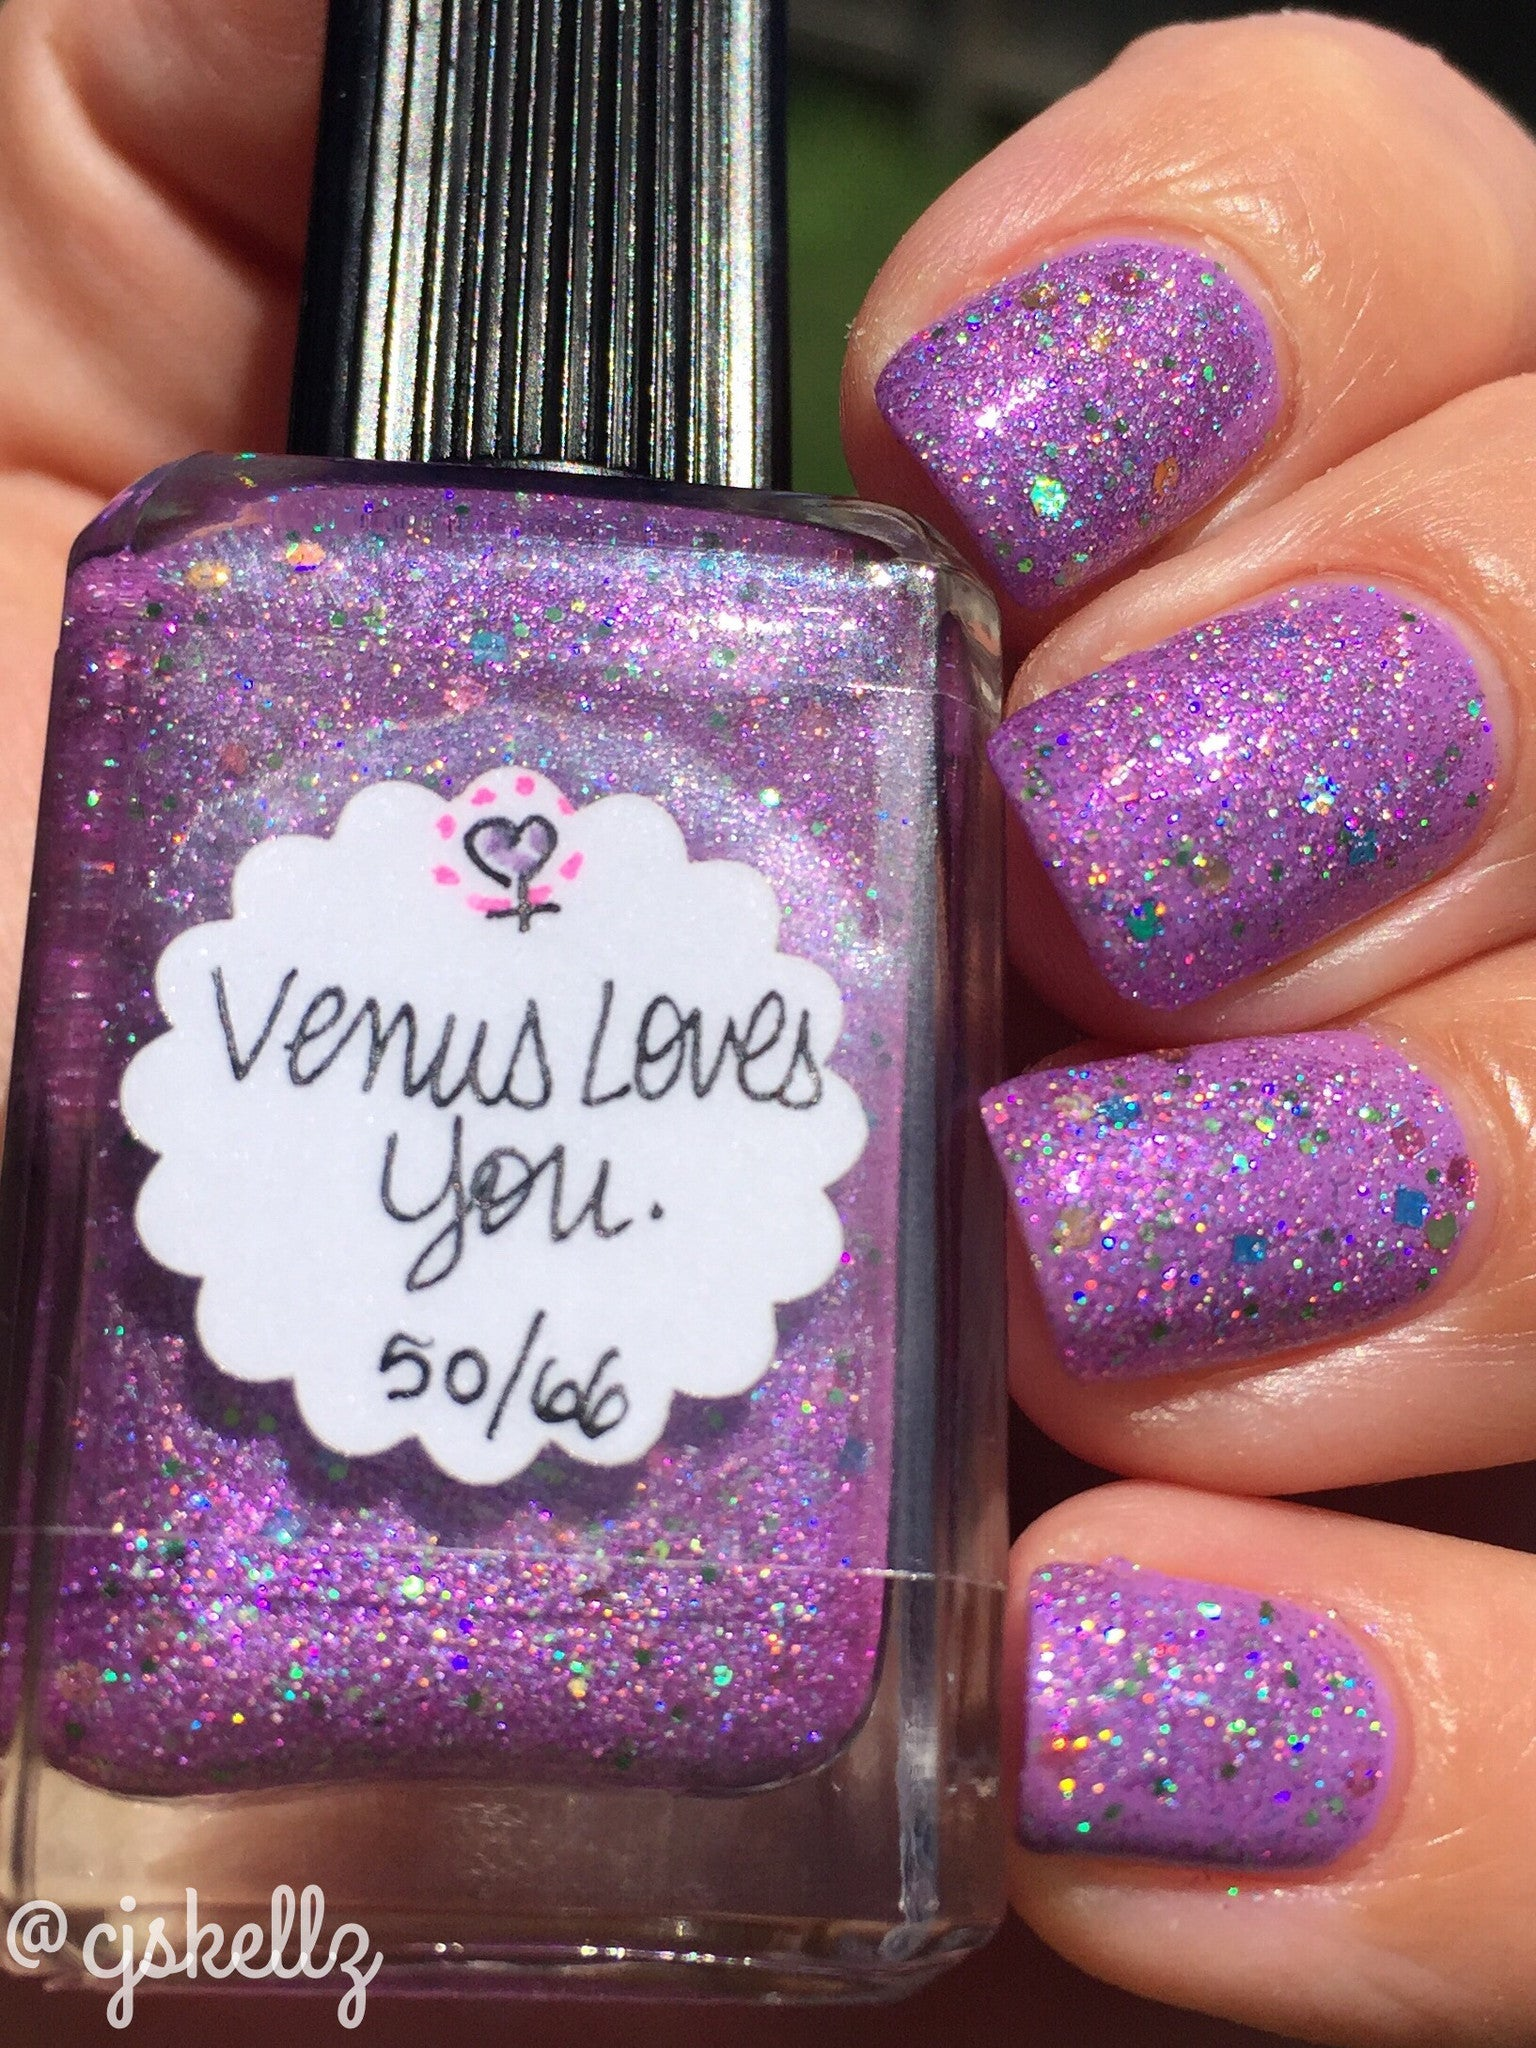 Special Edition—Venus Loves You